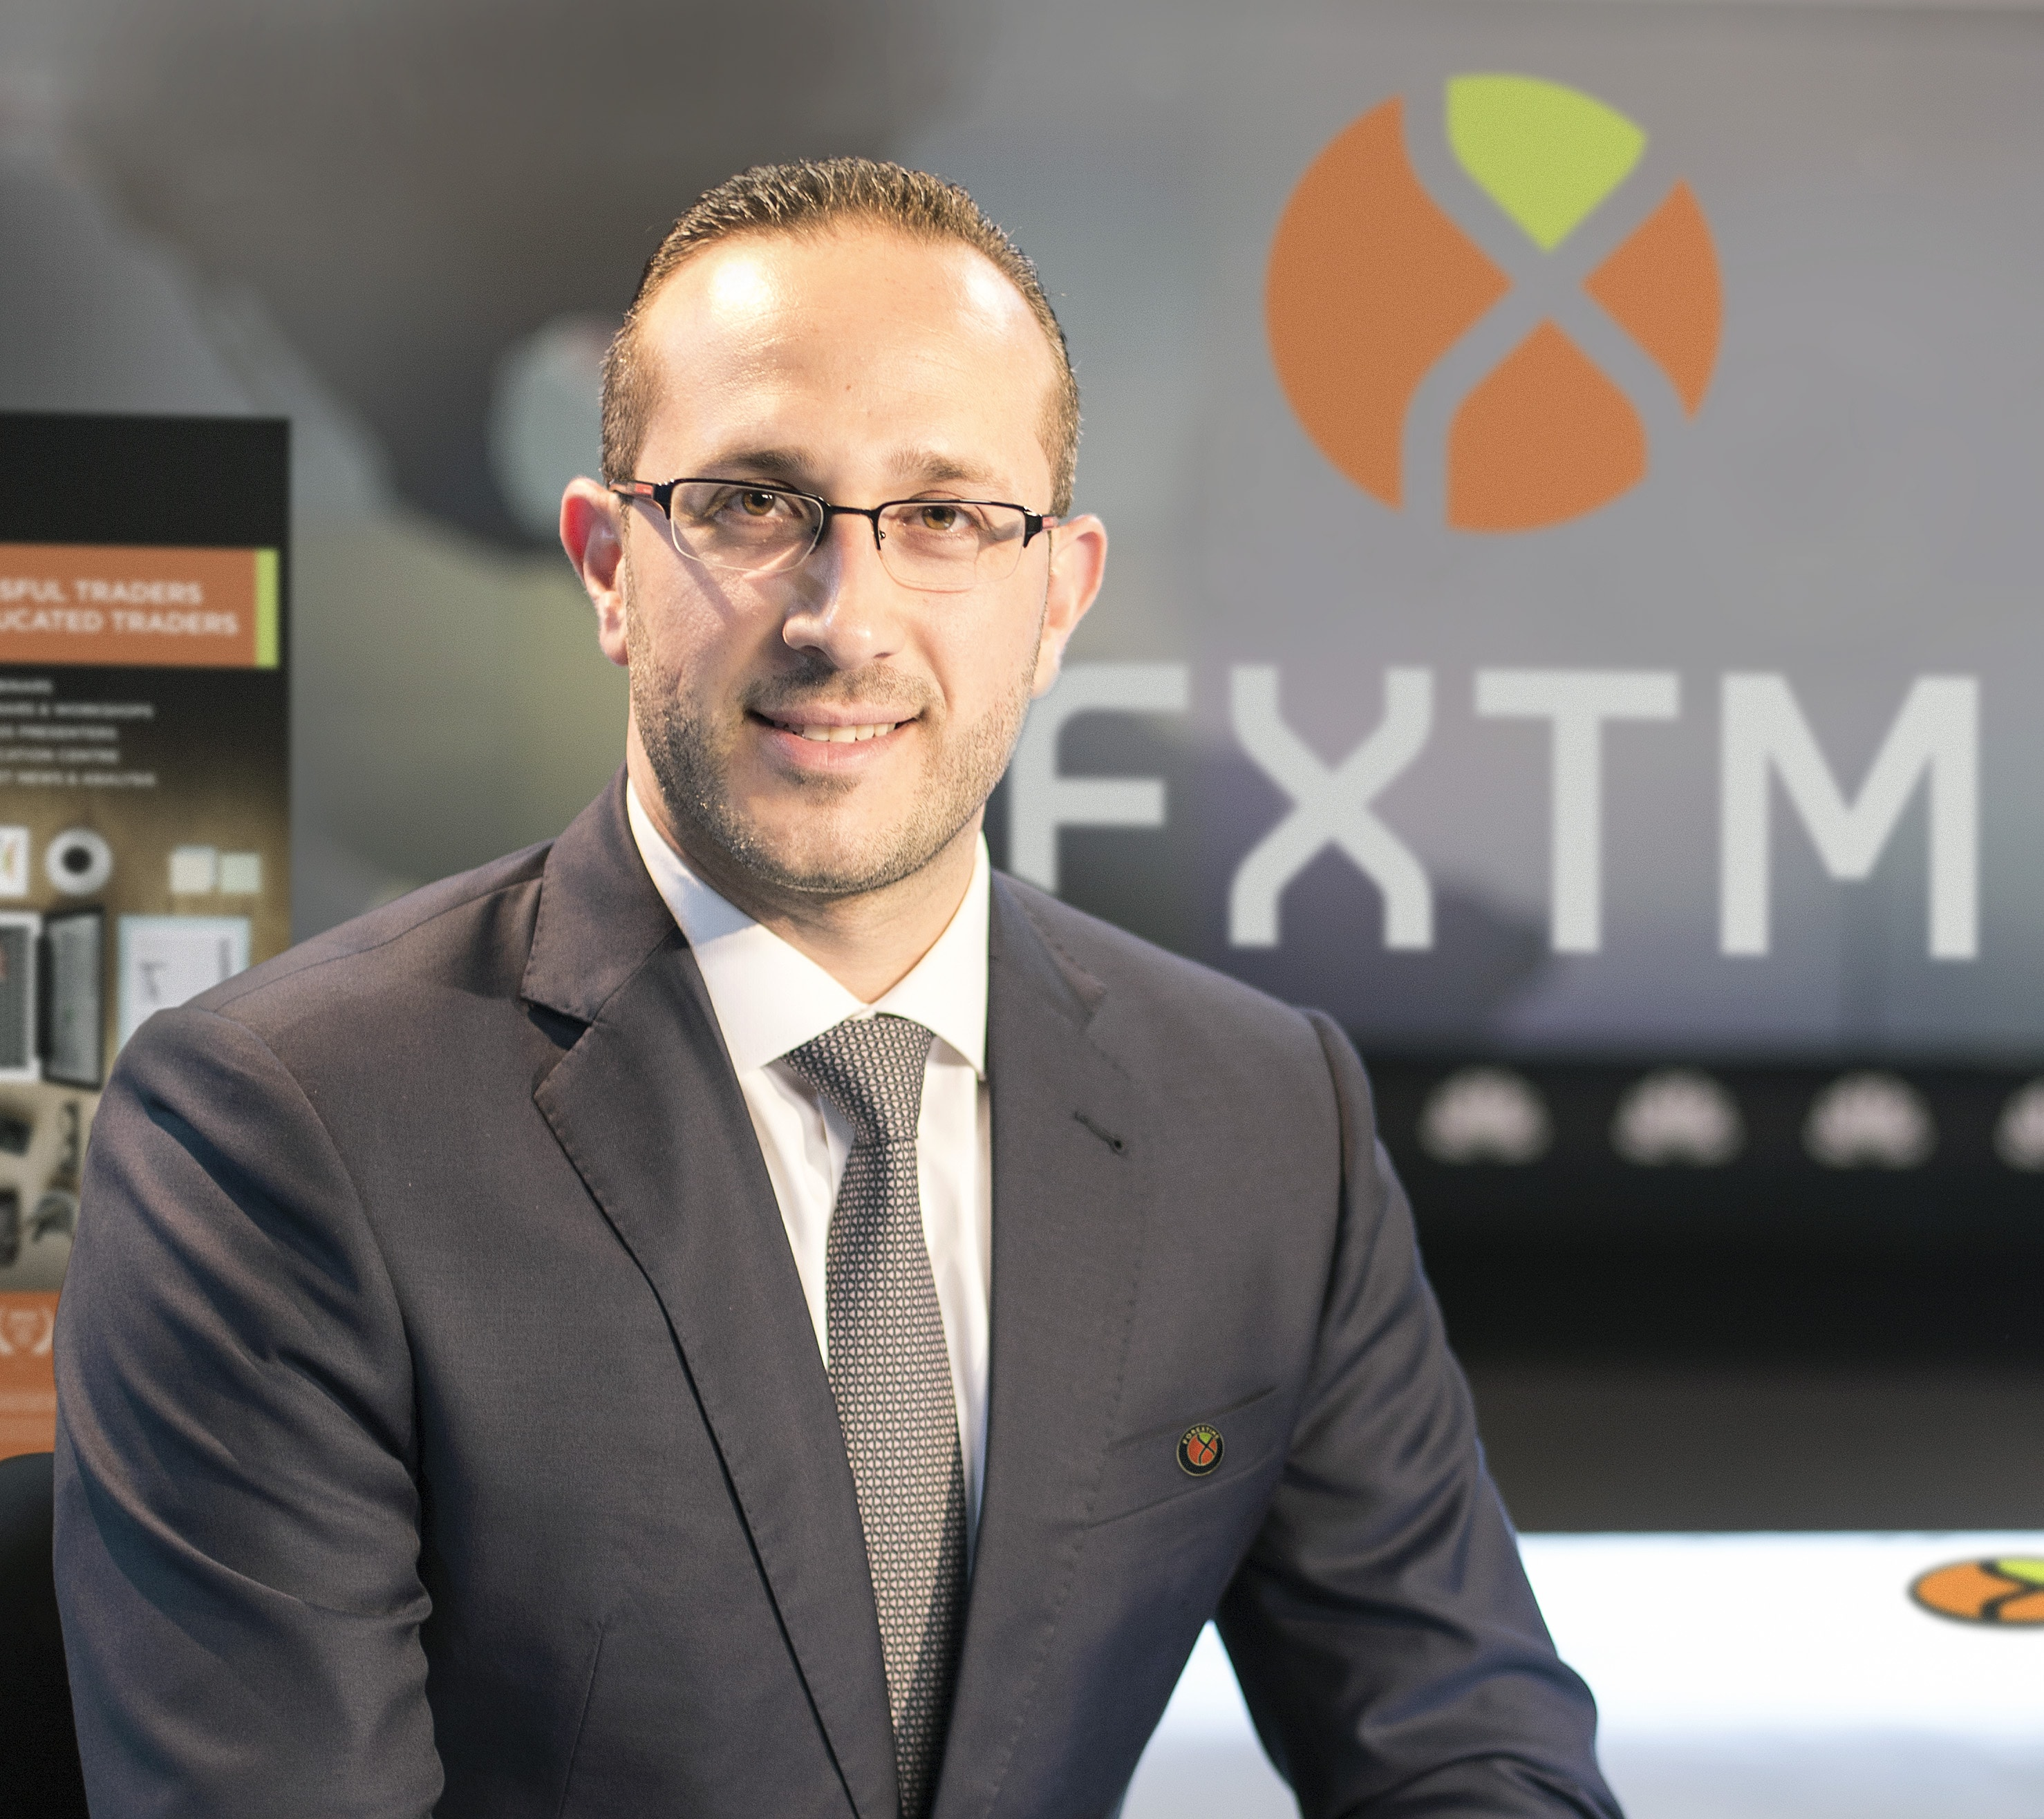 CNBC Star & FXTM Ambassador in MENA Talks FX Retail Business in Middle East